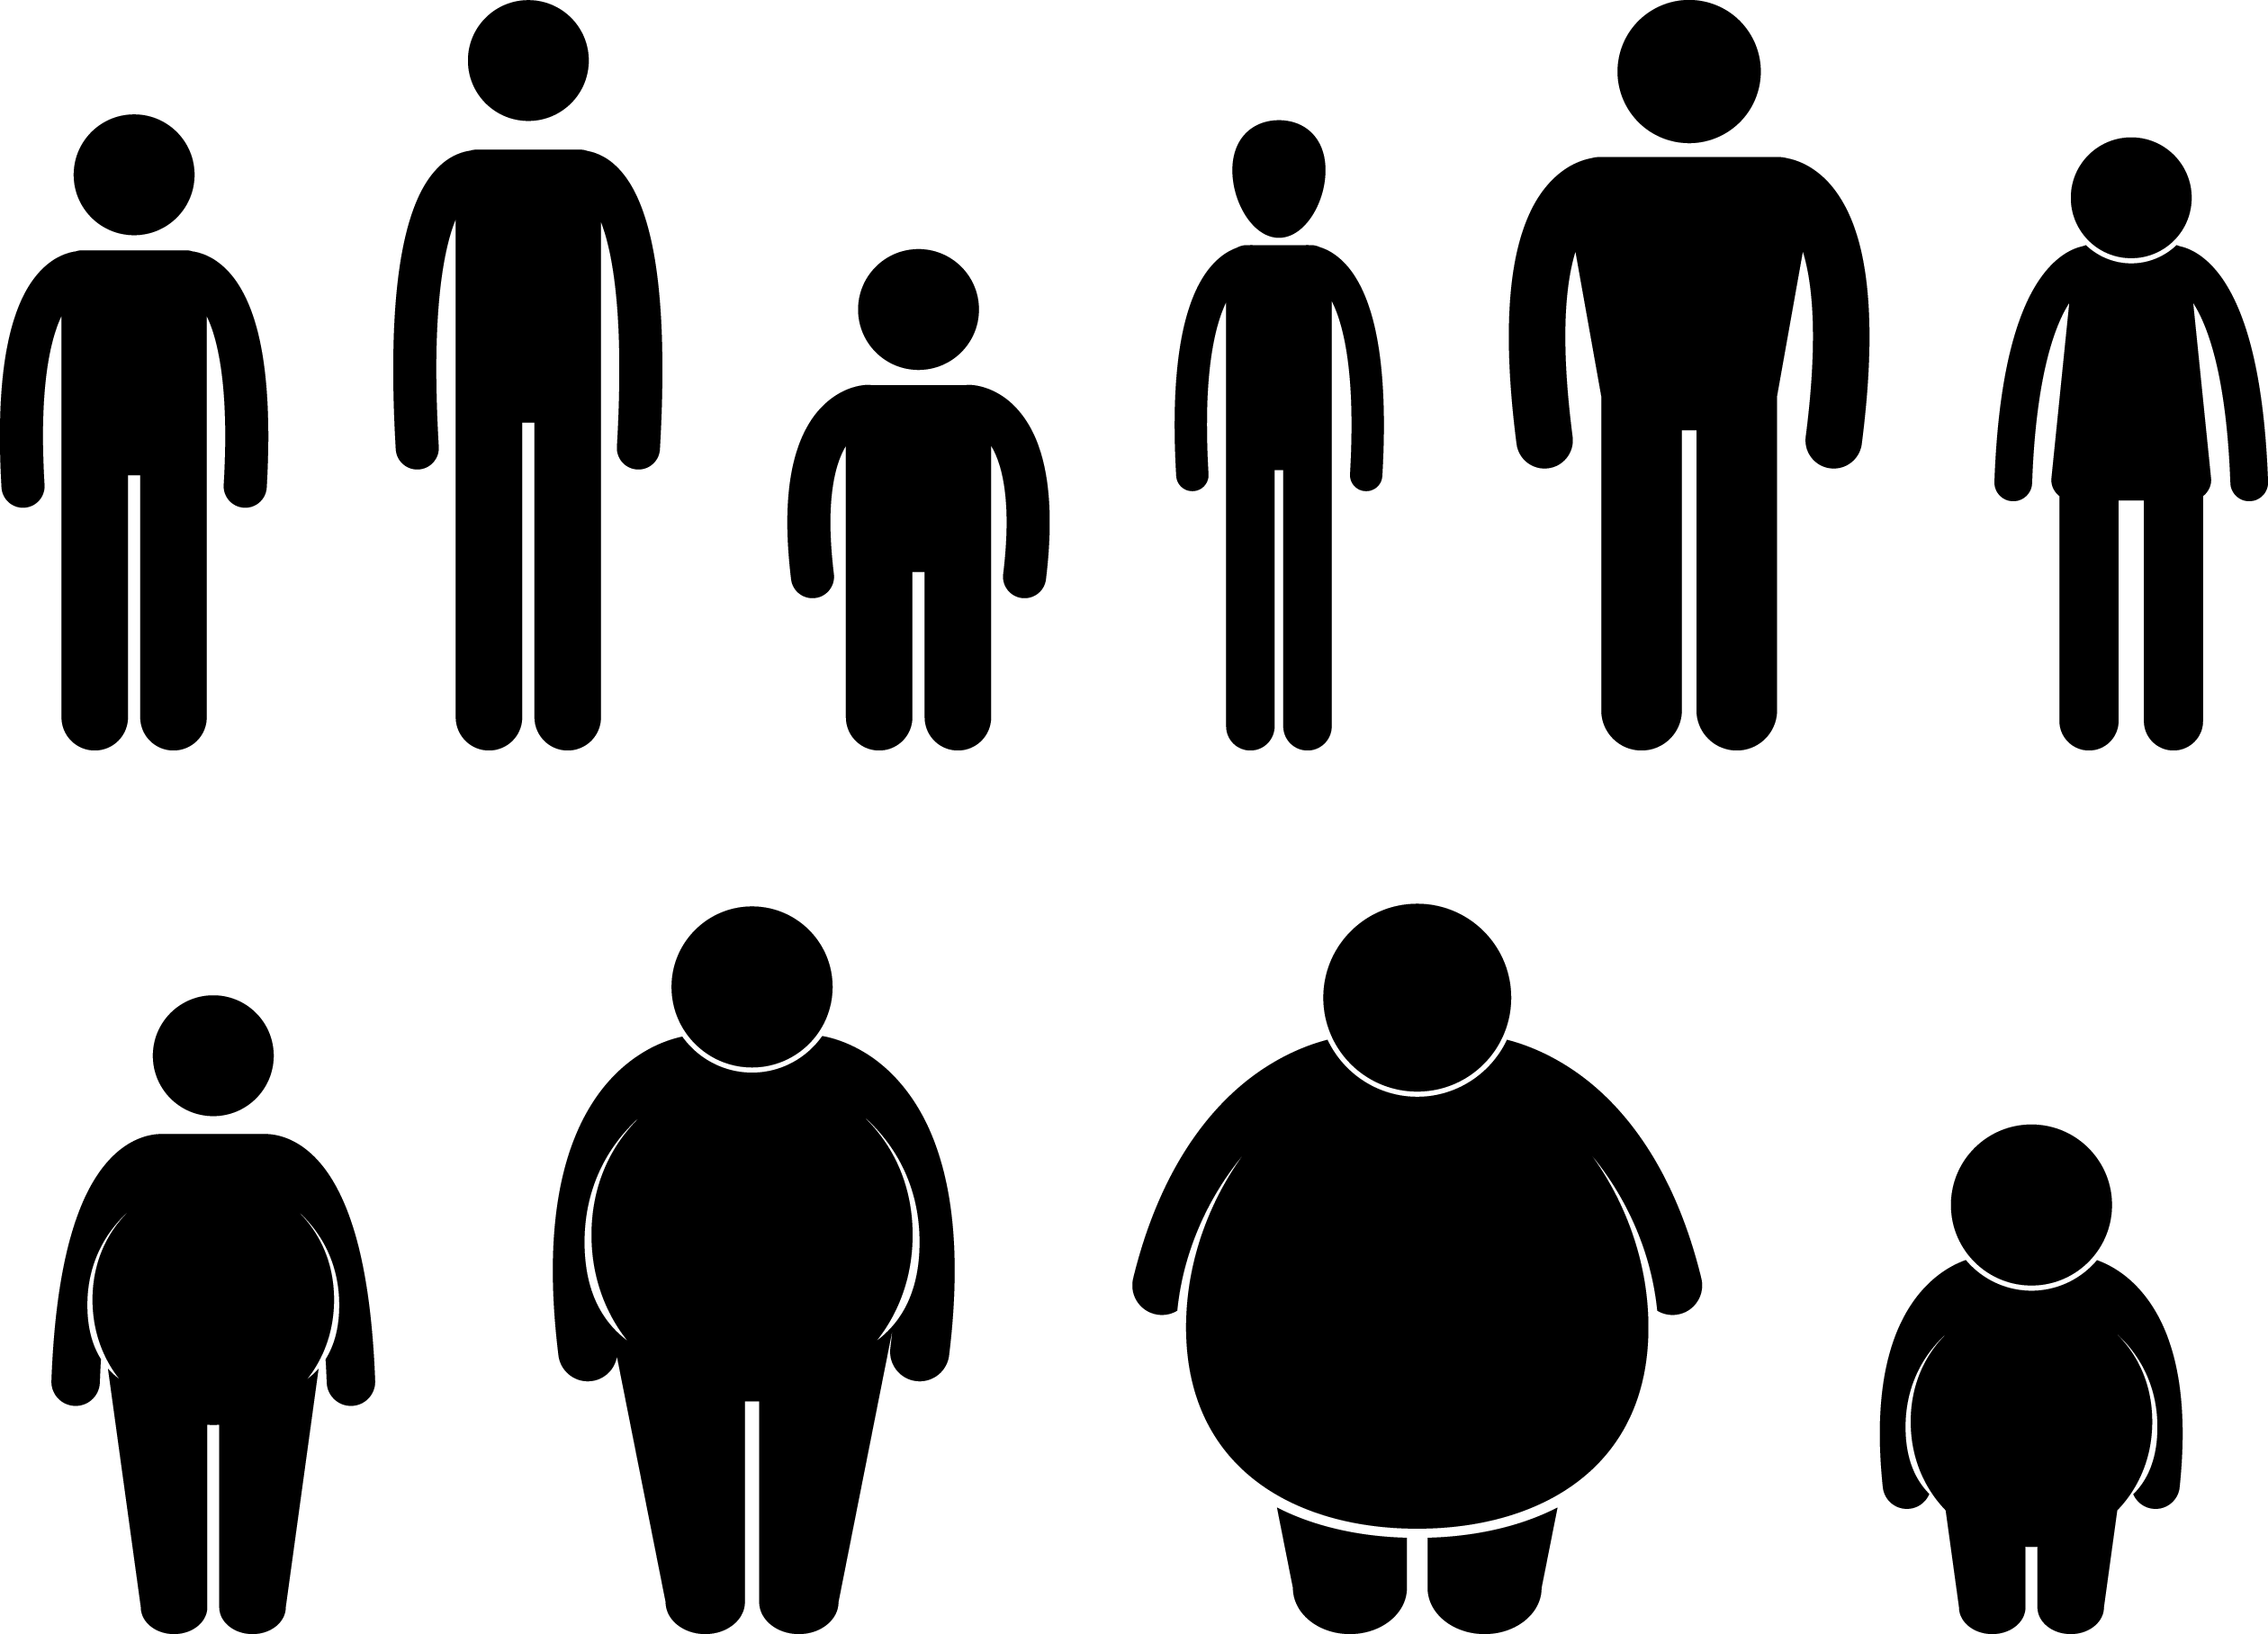 2520x1816 Study Shows Short Men And Overweight Women Have Lower Salaries